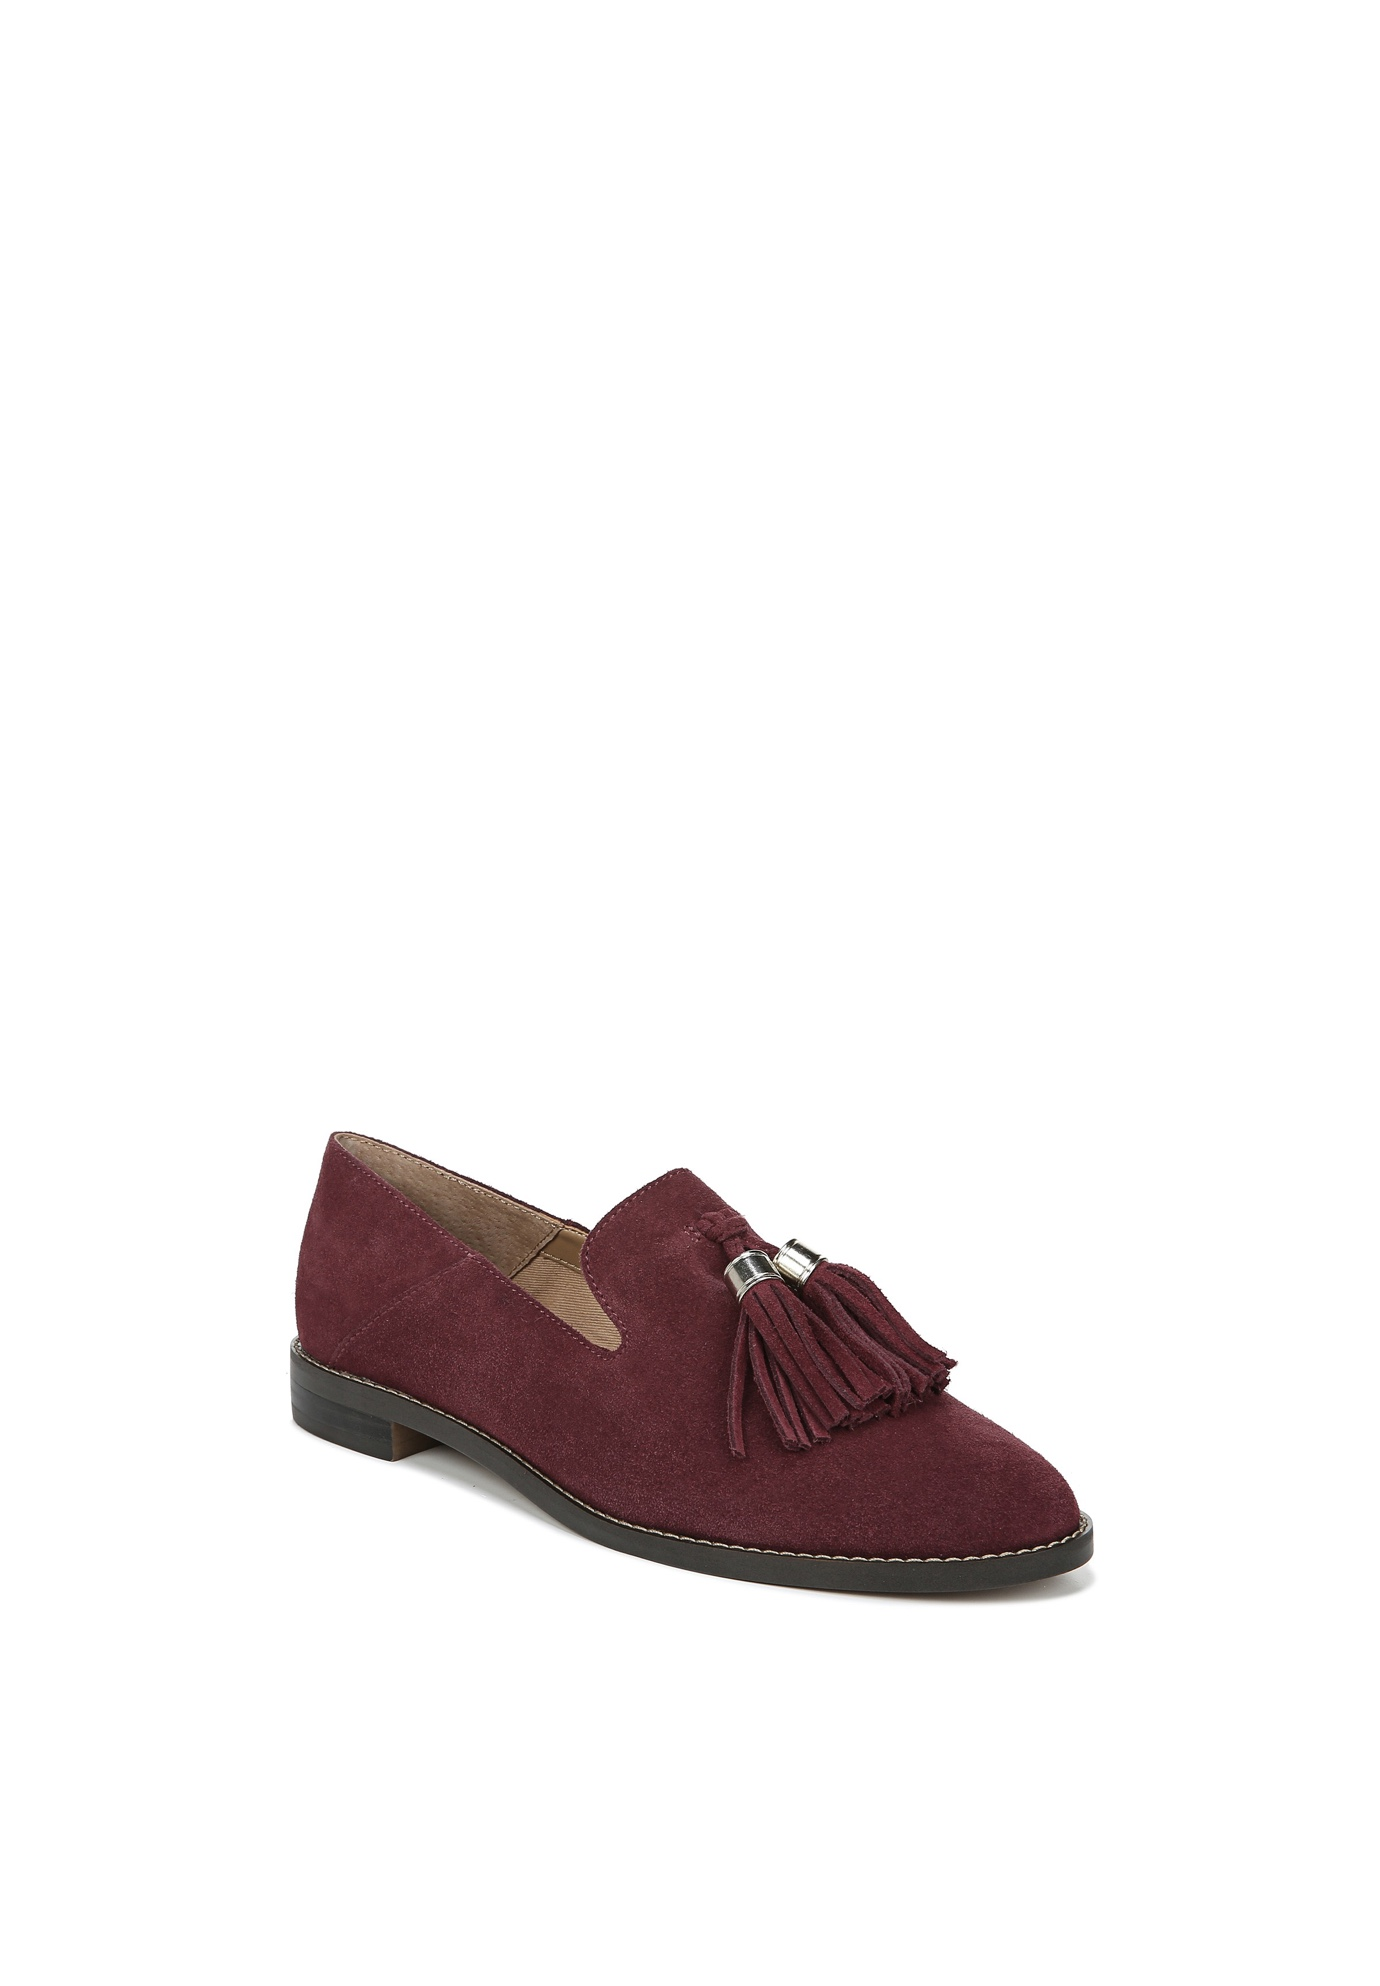 Hadden Loafer by Franco Sarto,